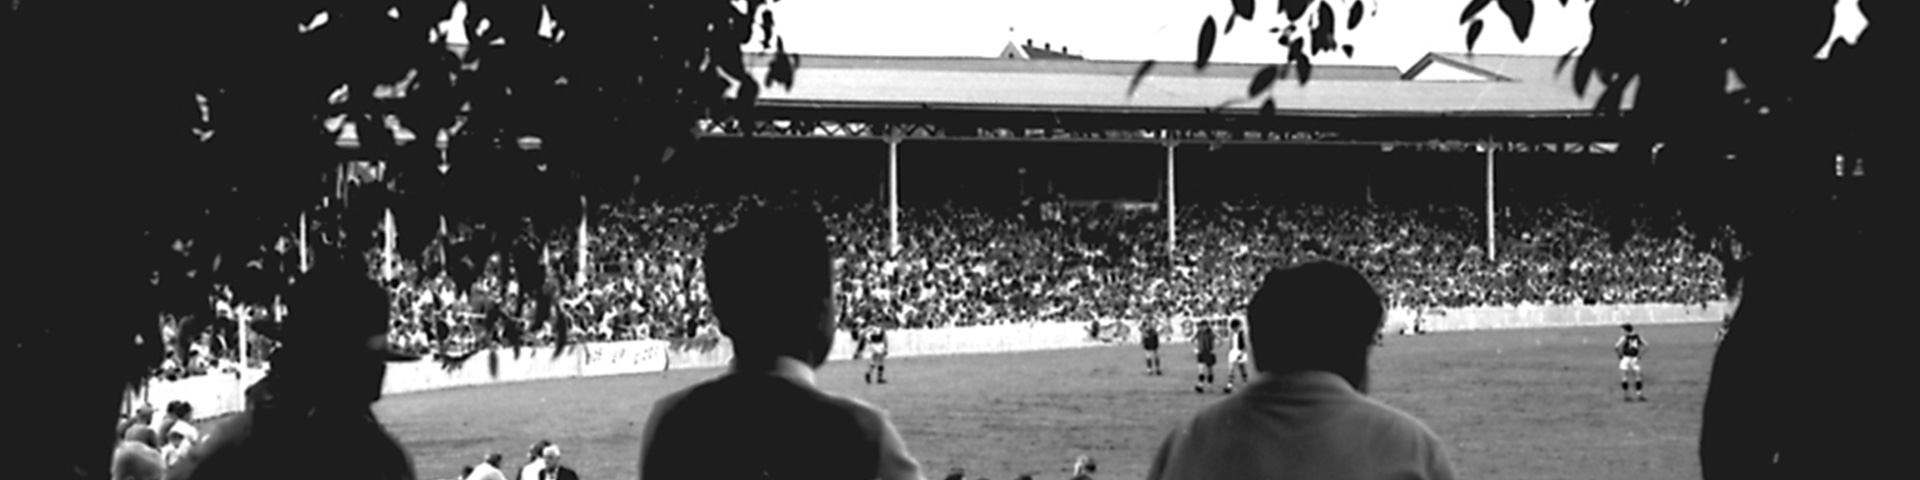 The Gabba 1965 - Stadiums Queensland History